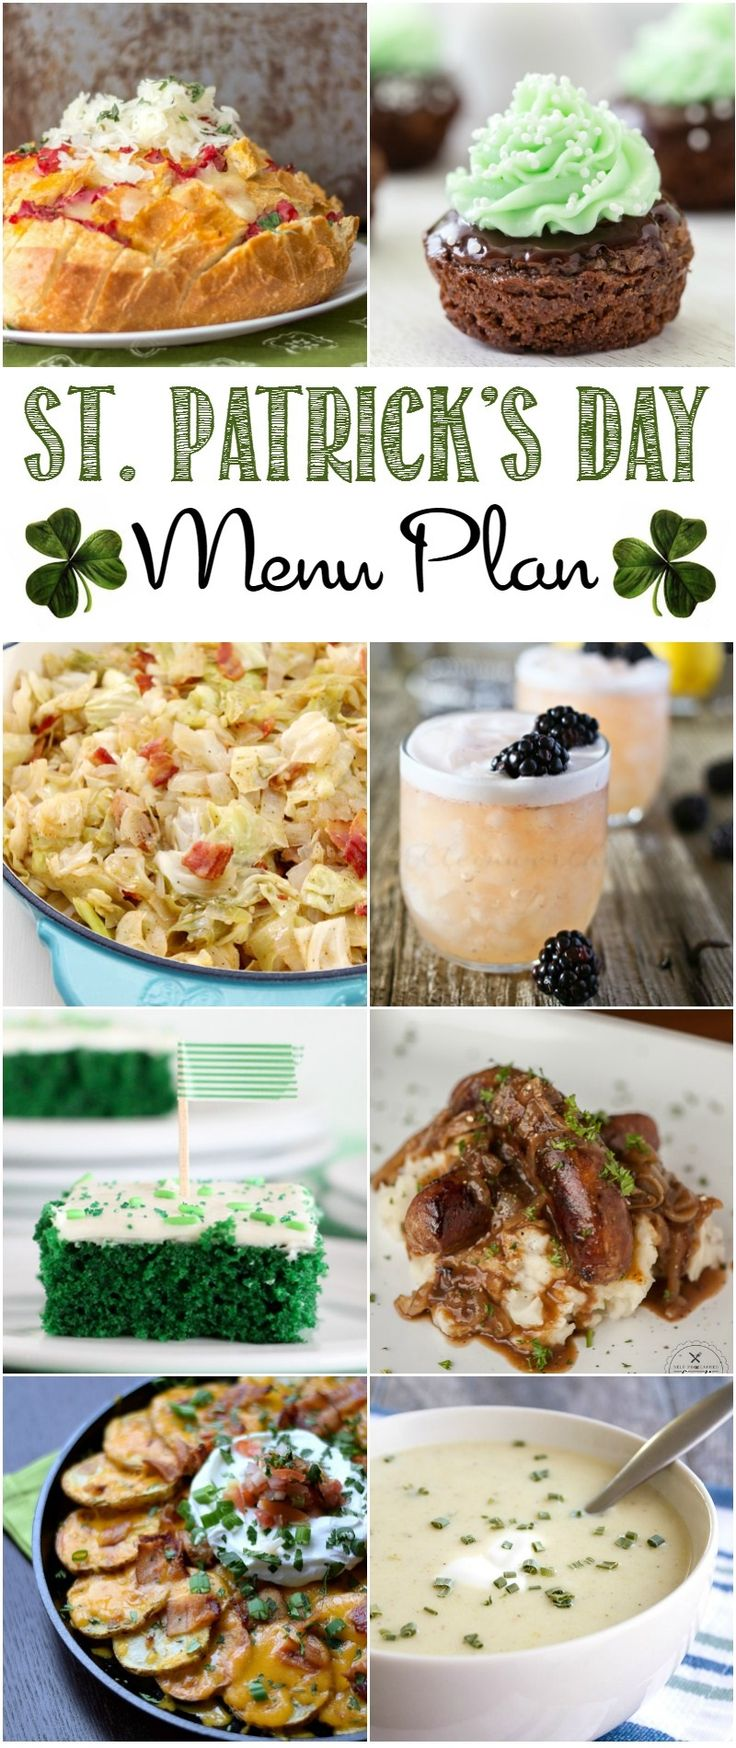 From appetizers to desserts, this St. Patrick's Day Menu Plan will help you plan an amazing party to celebrate with your favorite Leprechauns! | cookingwithcurls.com